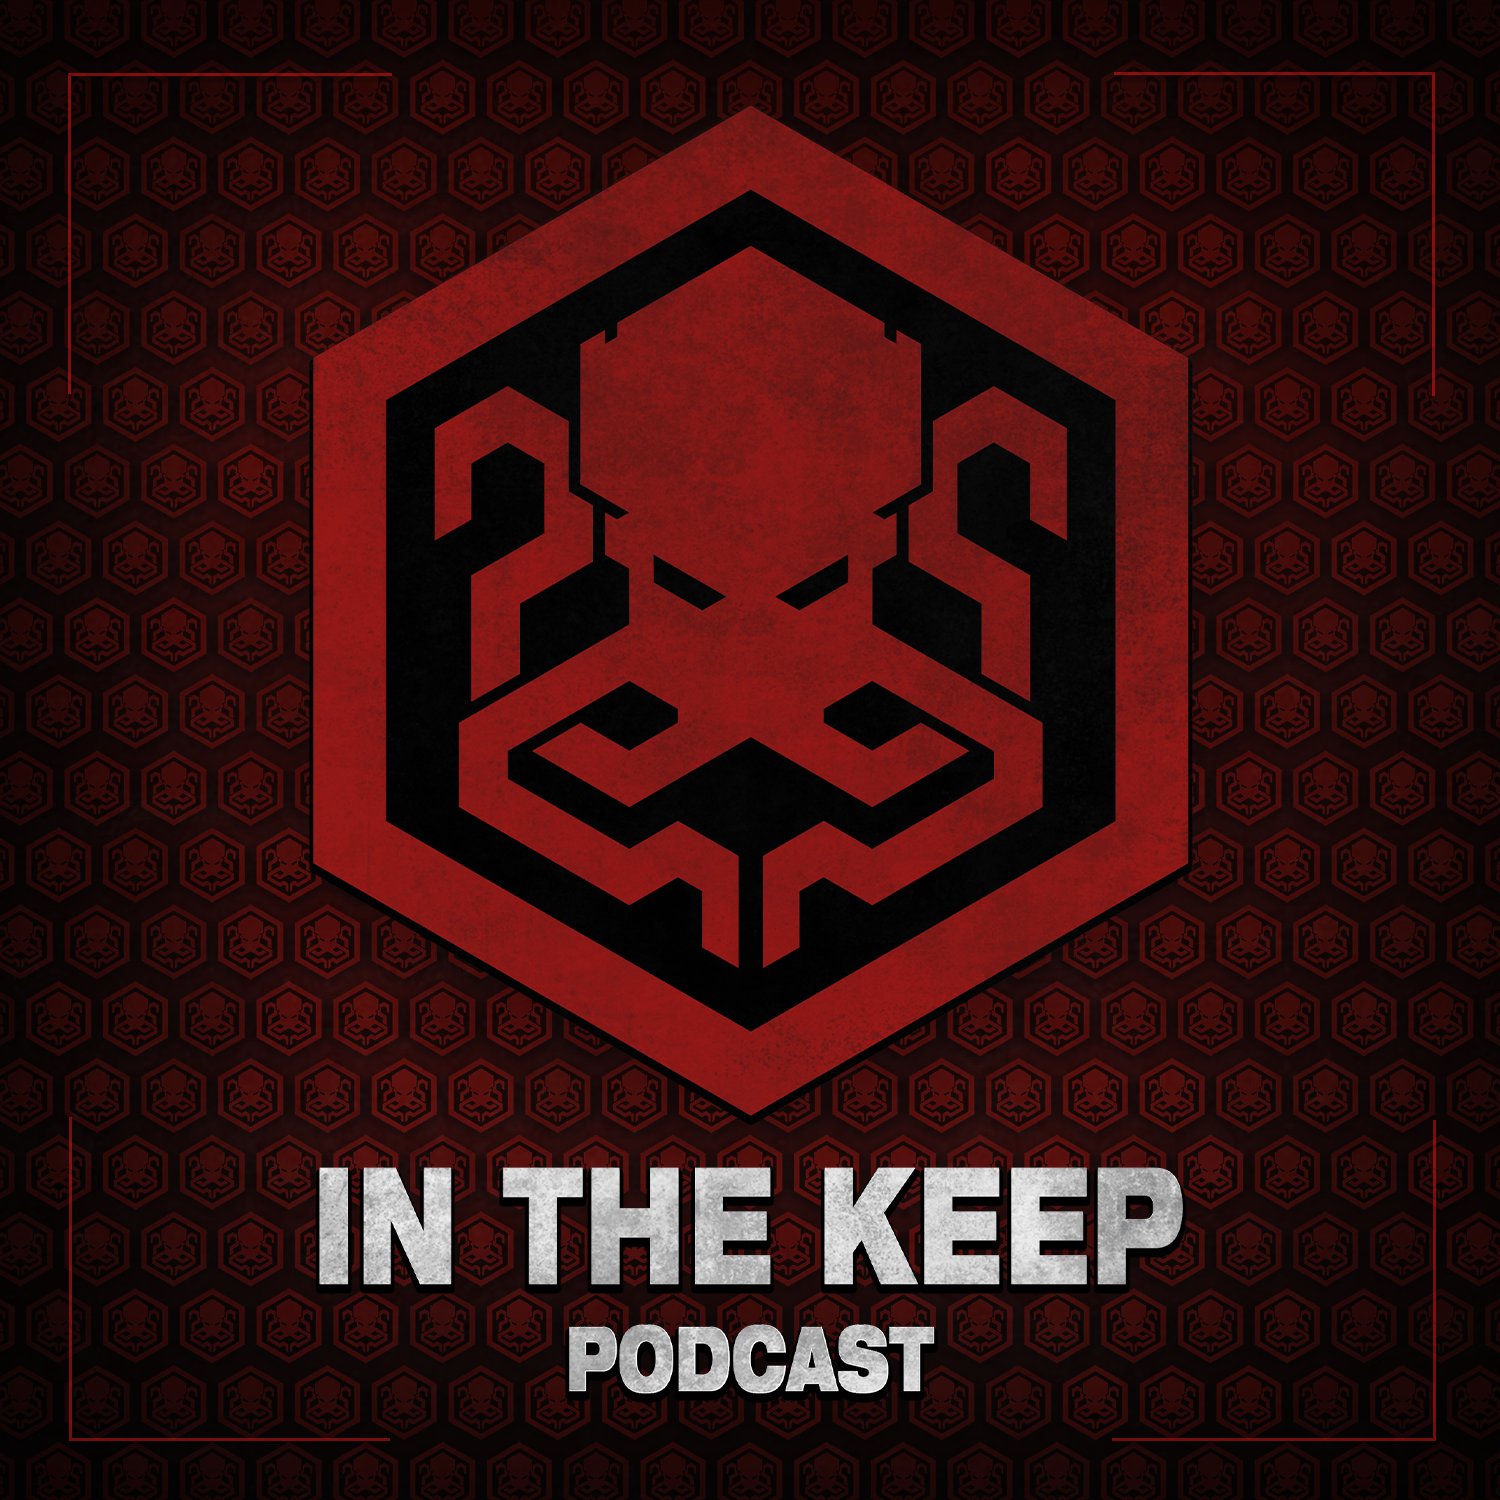 In The Keep Podcast - #89 MK Schmidt (Star Explorers)